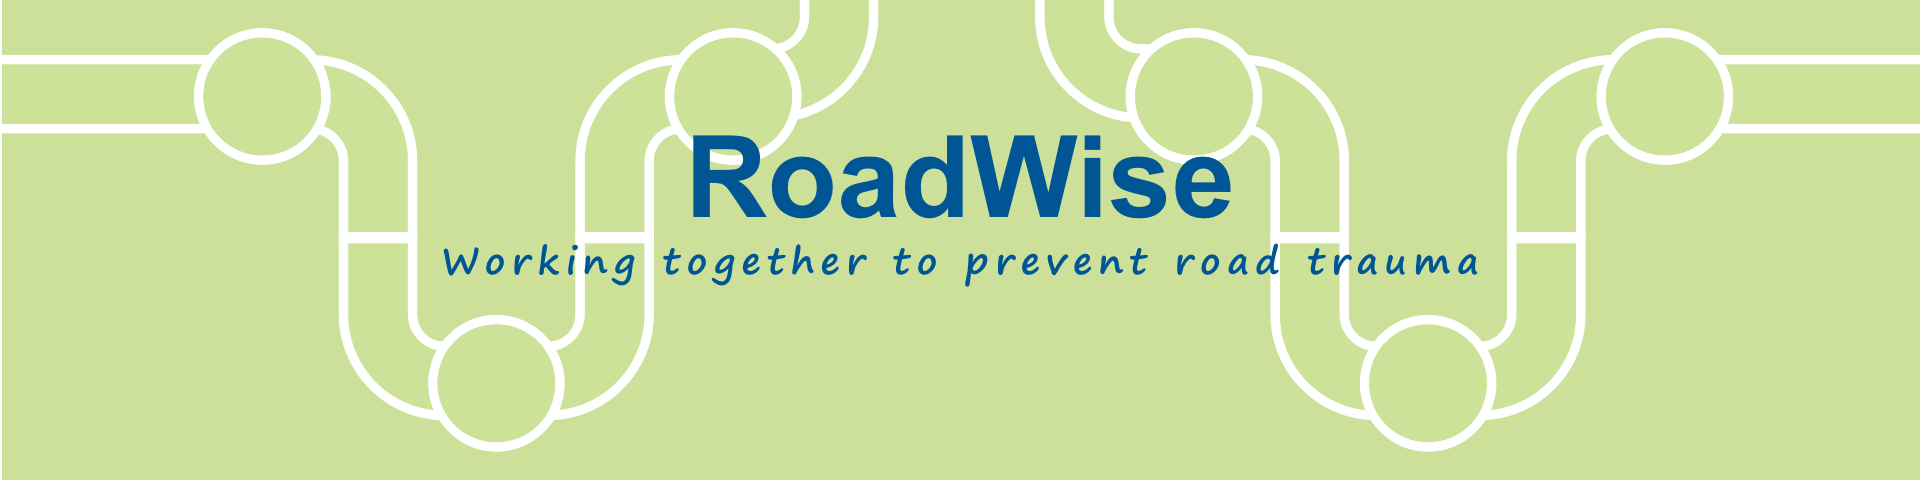 Picture: Roadwise